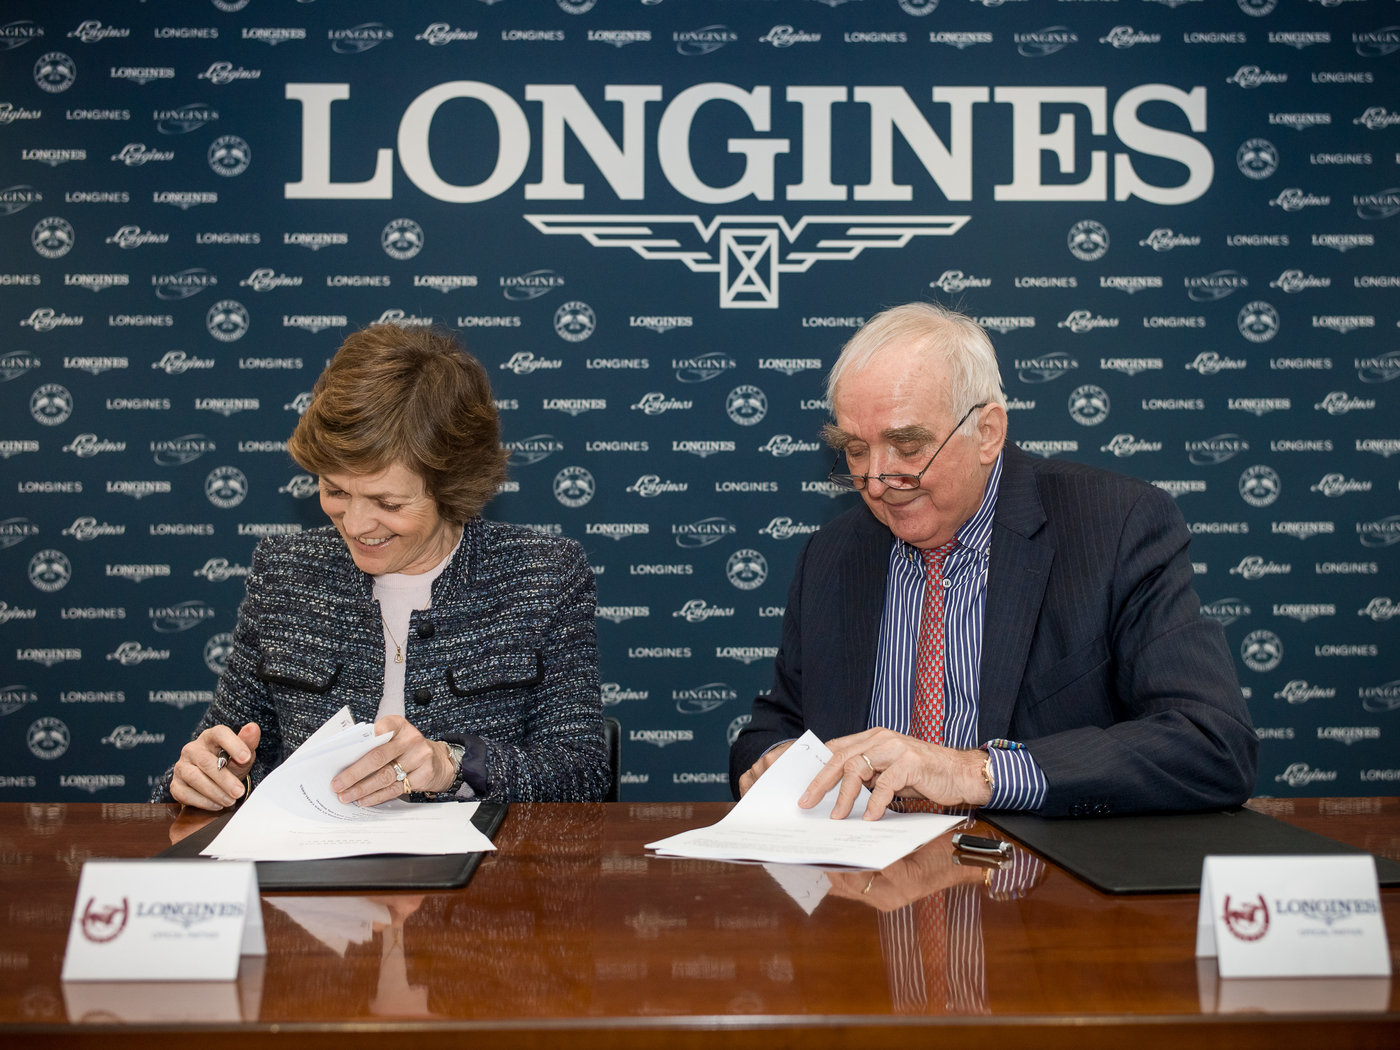 Longines Flat Racing Event: Longines signs a new partnership agreement with the International Federation of Gentlemen and Lady Riders 1